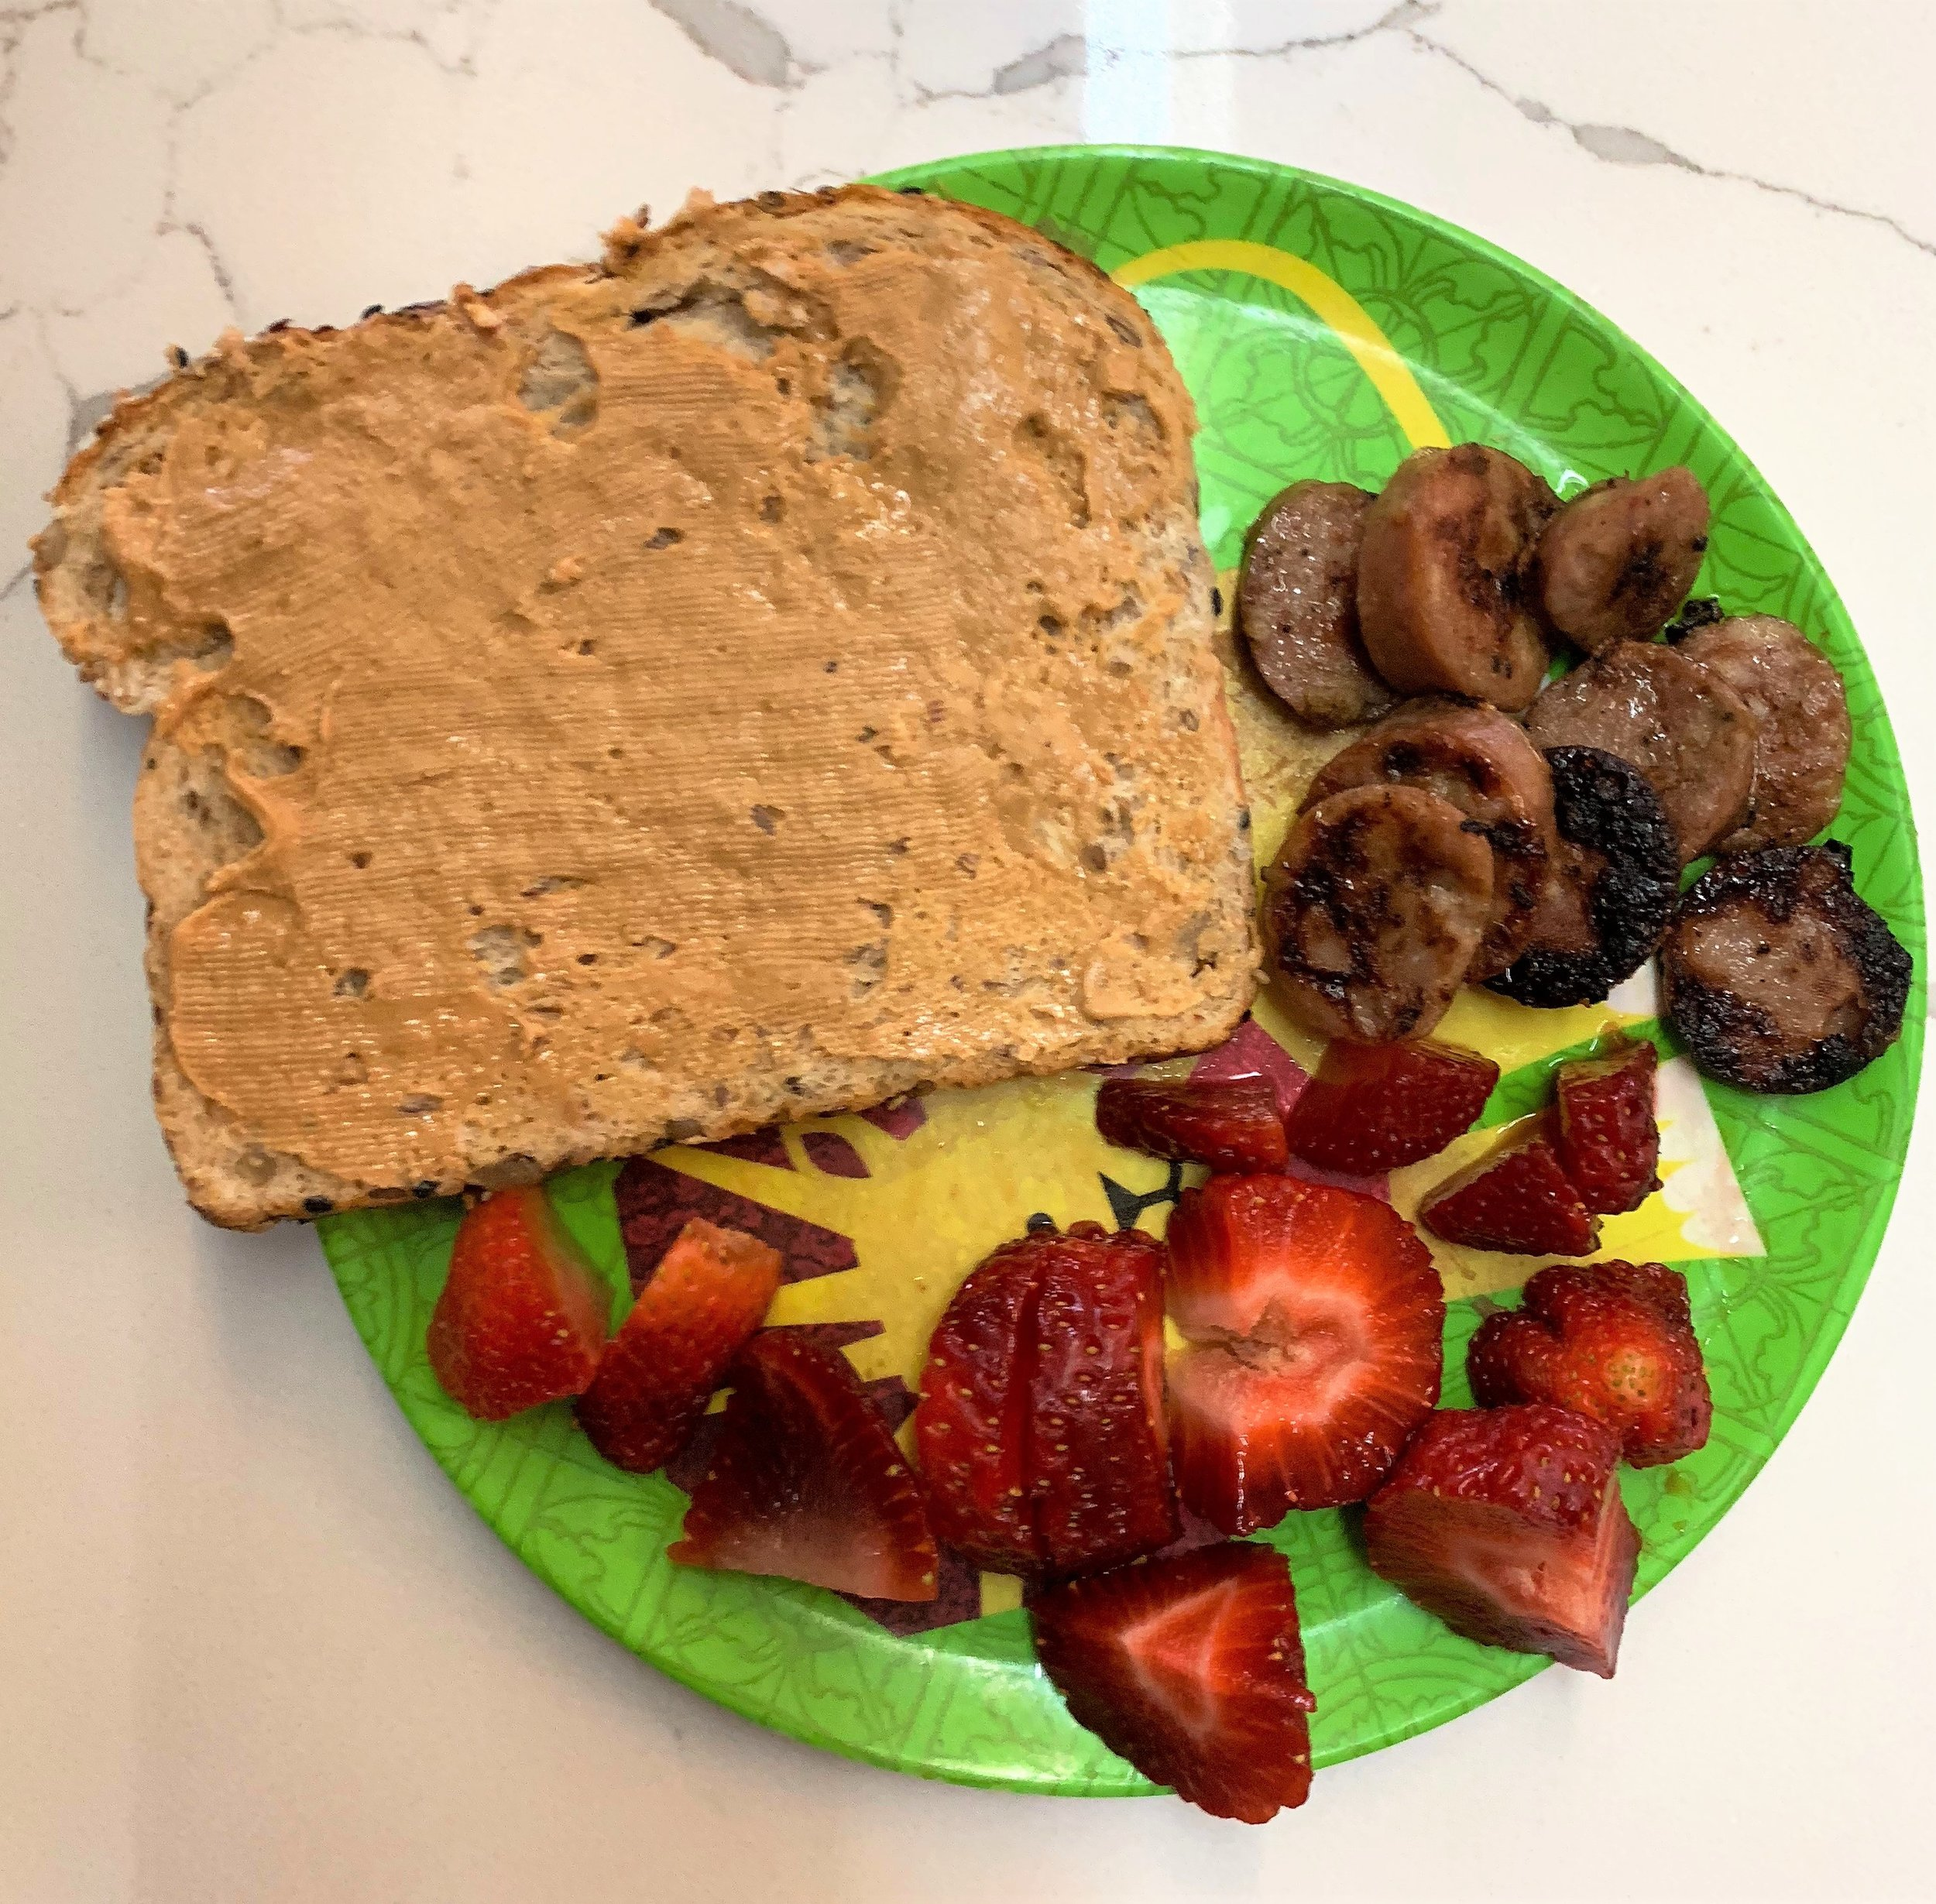 Toast with peanut butter, chicken sausages, strawberries